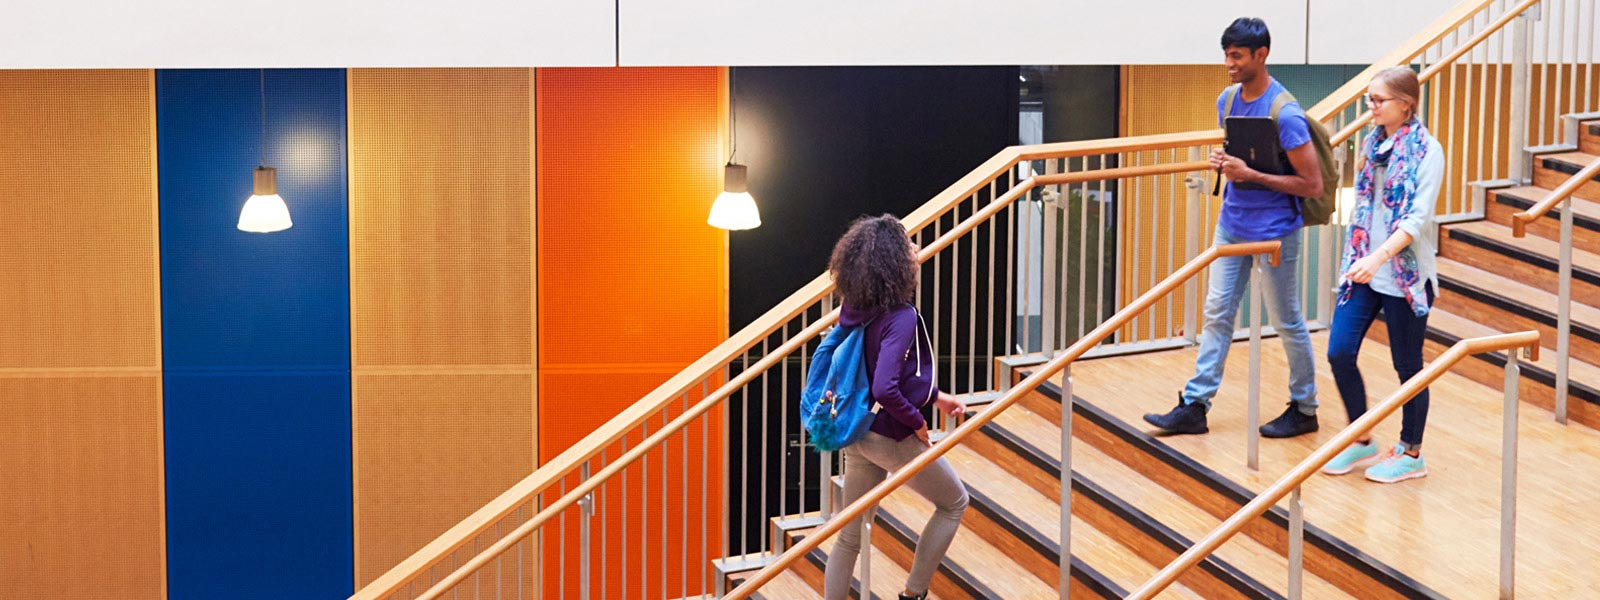 Photograph of students walking on stairs in school.